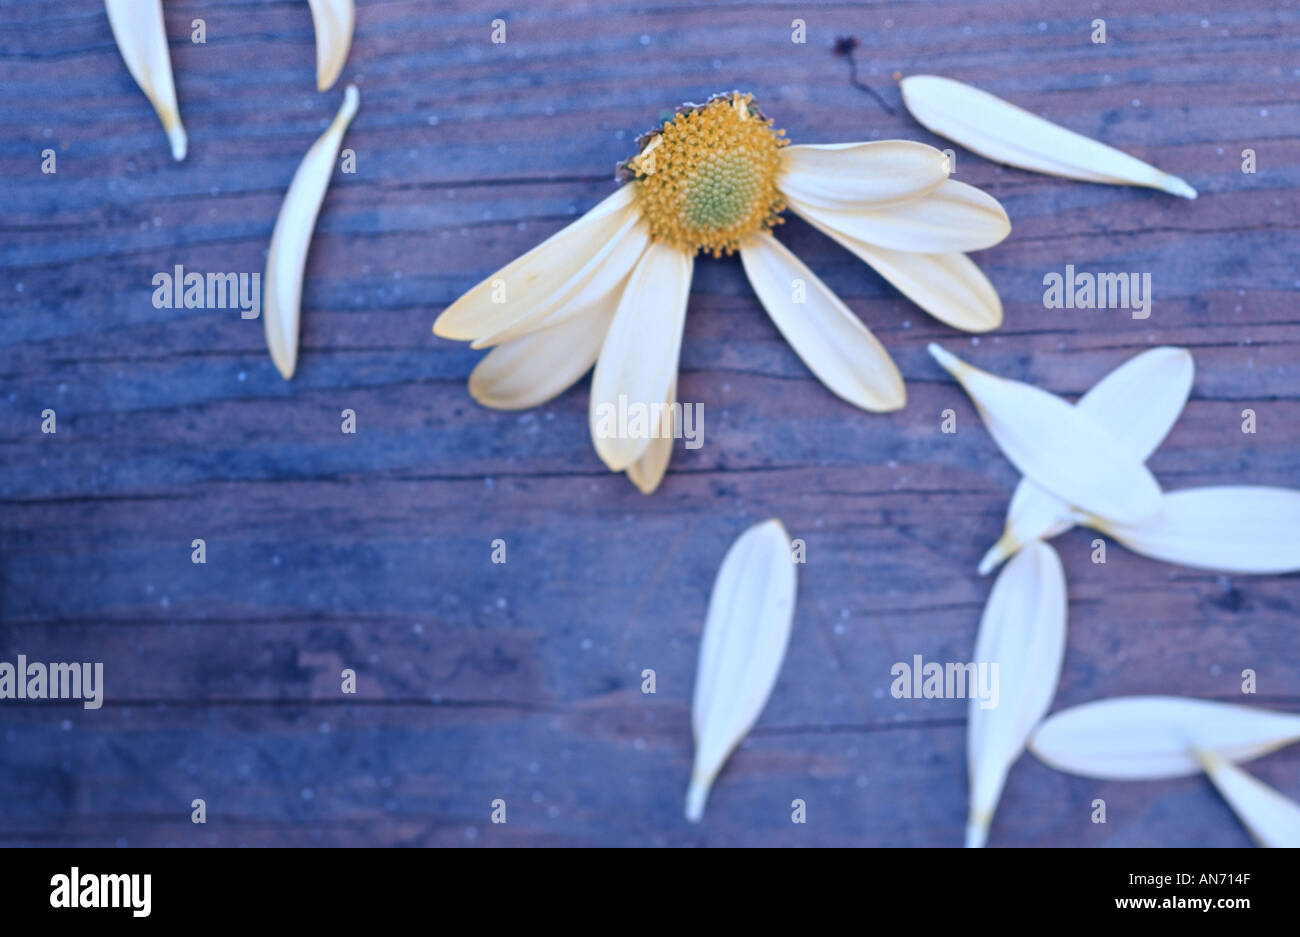 Flower petals torn off daisy on wooden table. 'He loves me, he loves me not' concept. - Stock Image